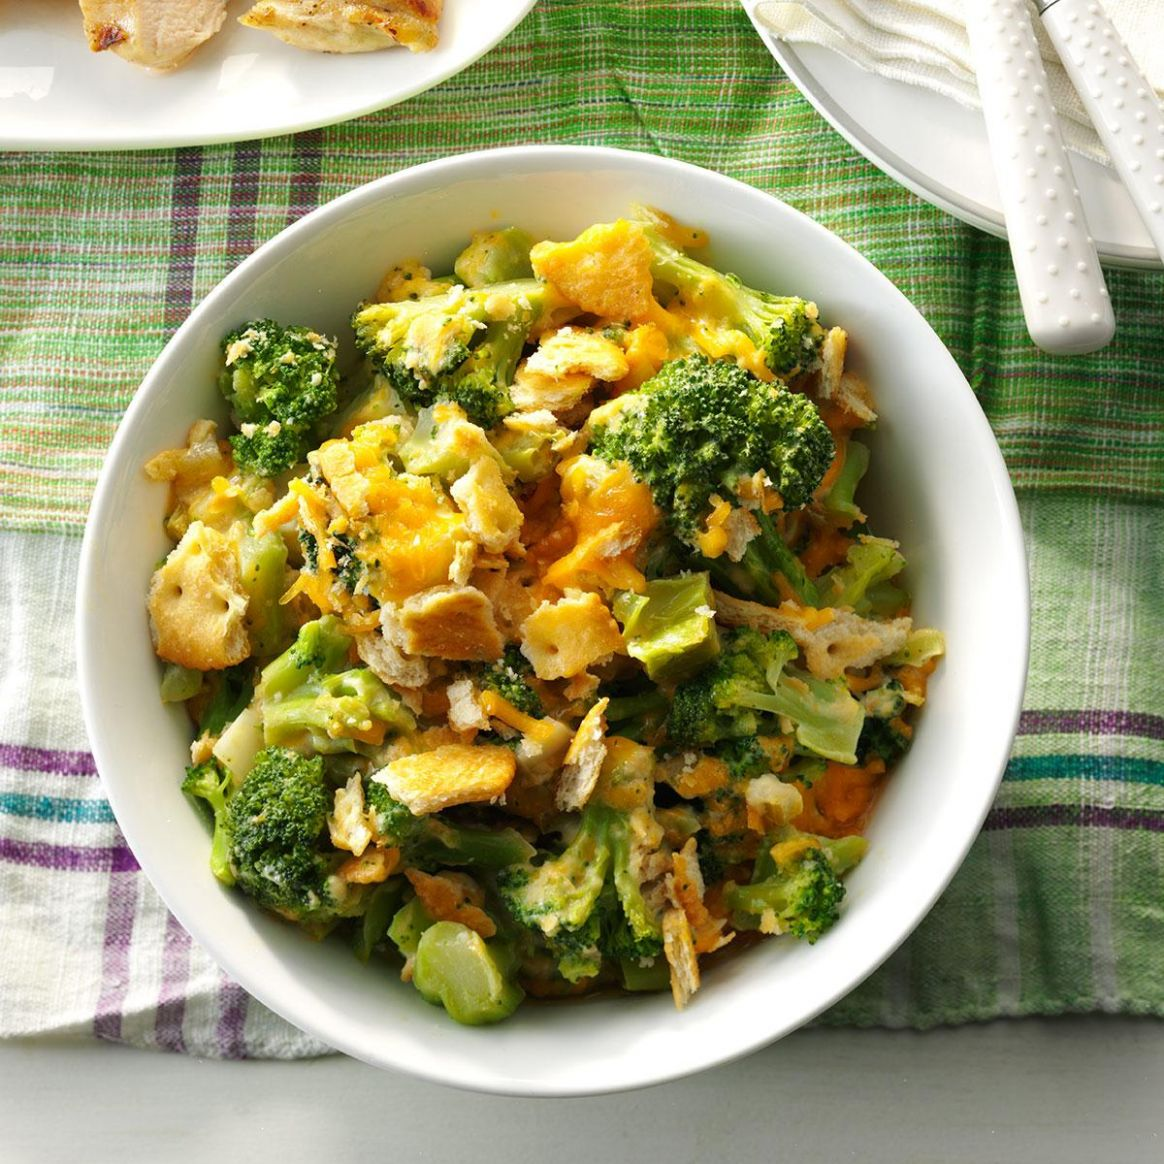 Slow-Cooked Broccoli - Recipes Cooking Broccoli